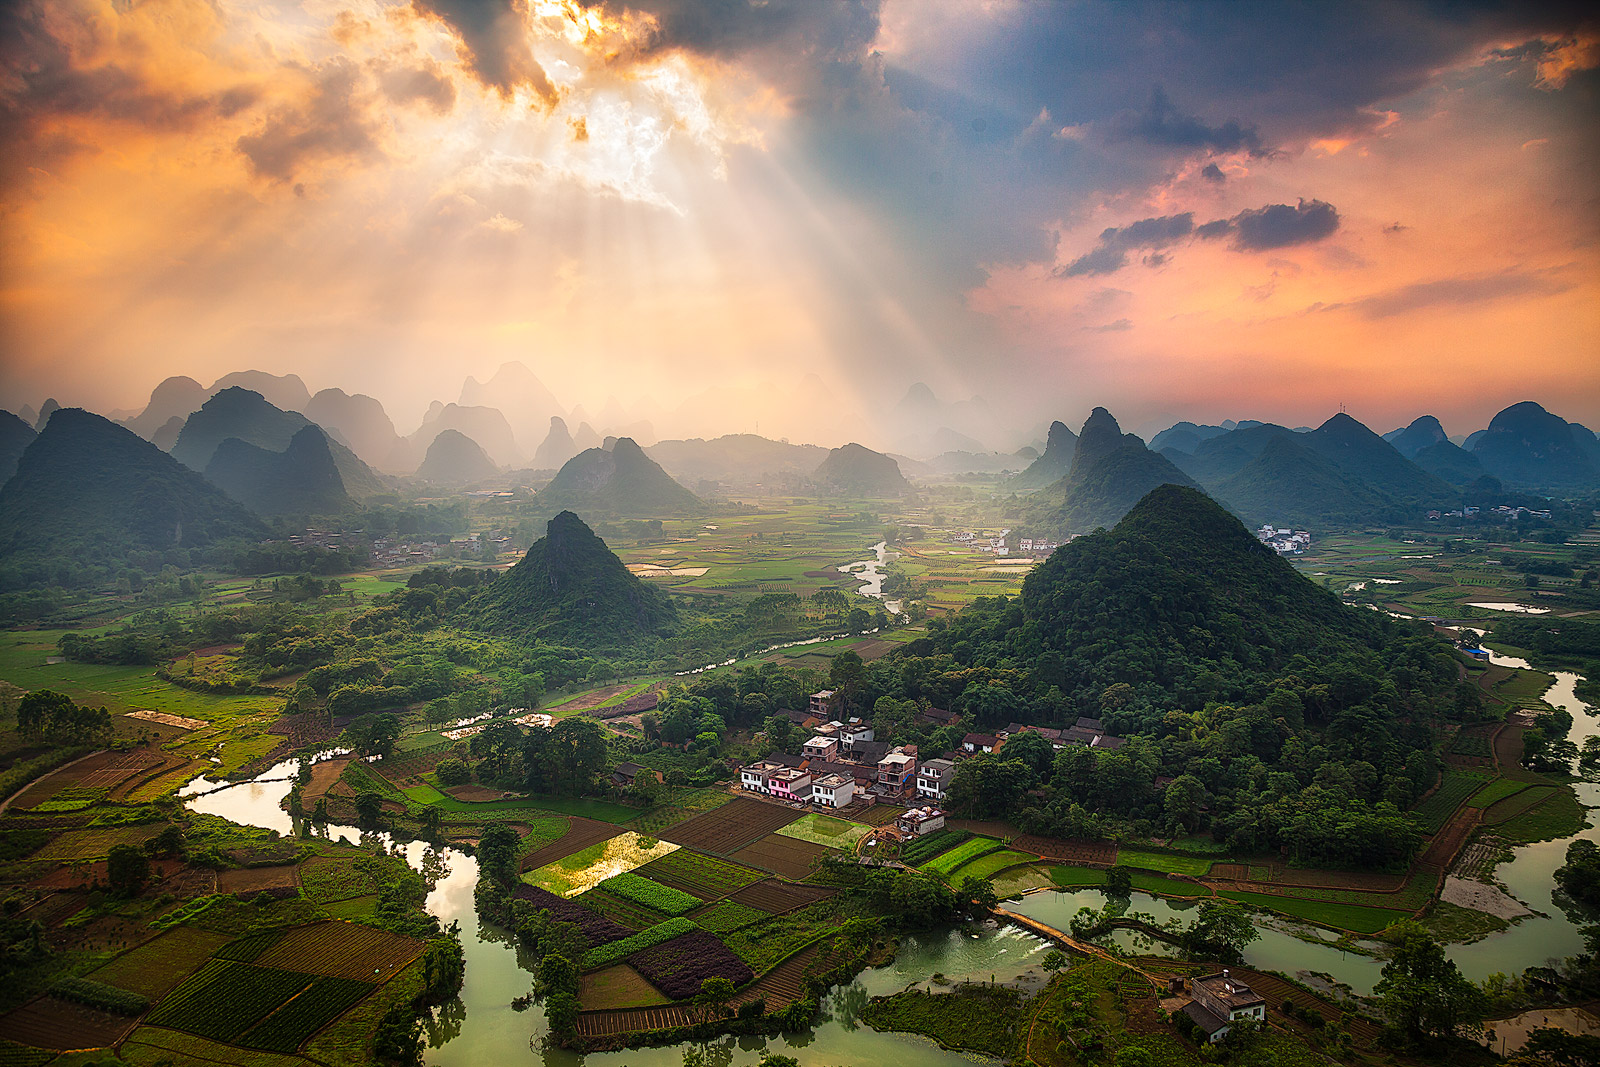 asia,china,cloud,cloudy,cuipingshan,cuipingshan hill,guilin,hill,karst,karst mountains,landscape,mist,misty,mountain,mountain range,peak,range,river,valley,yangshuo,yangshuo area,zhouzhai,zhouzhai vil, photo